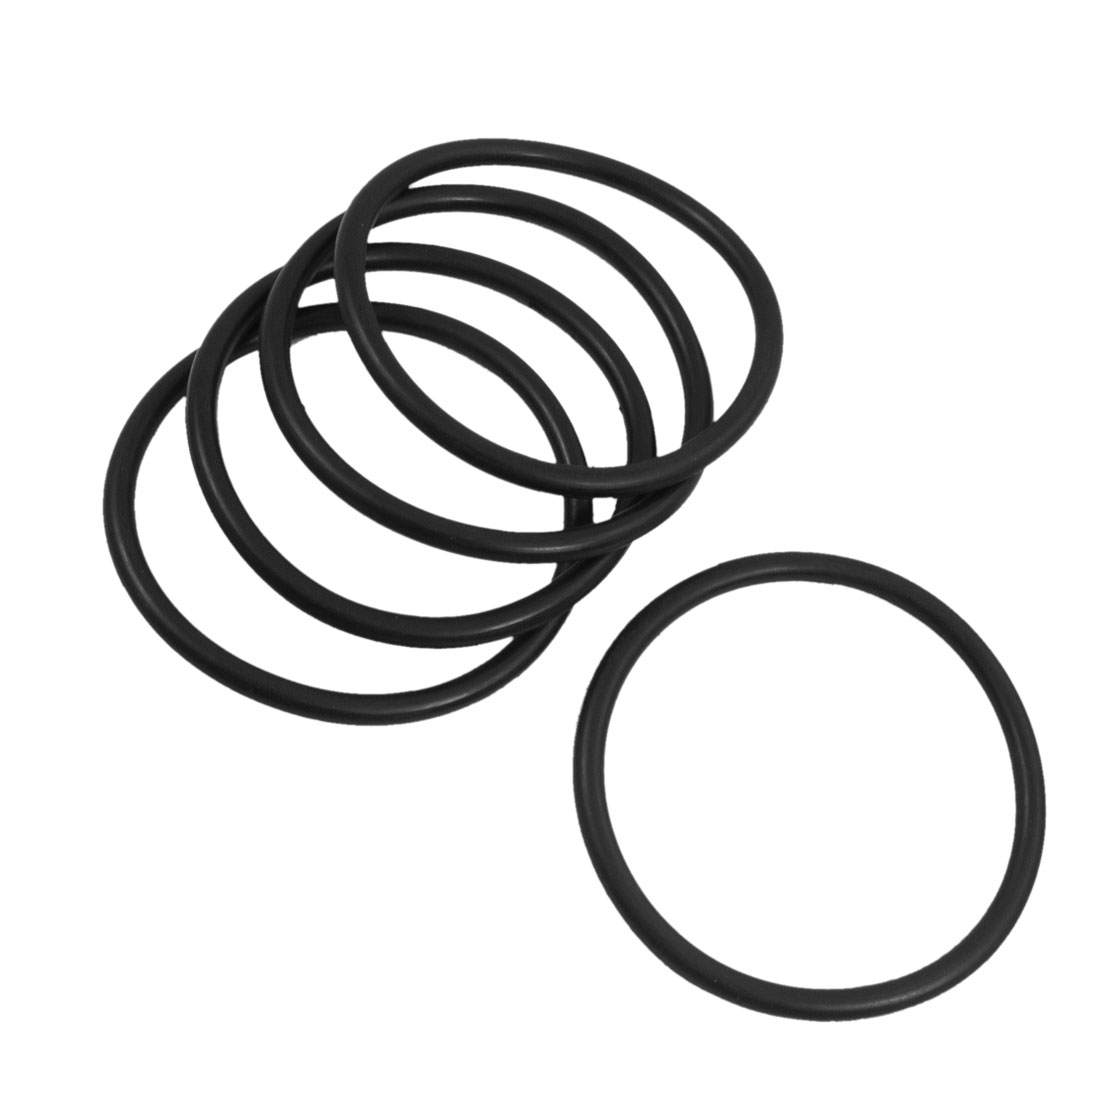 5 Pcs 75mm x 5mm Black Rubber Sealing Washers Oil Filter O Rings